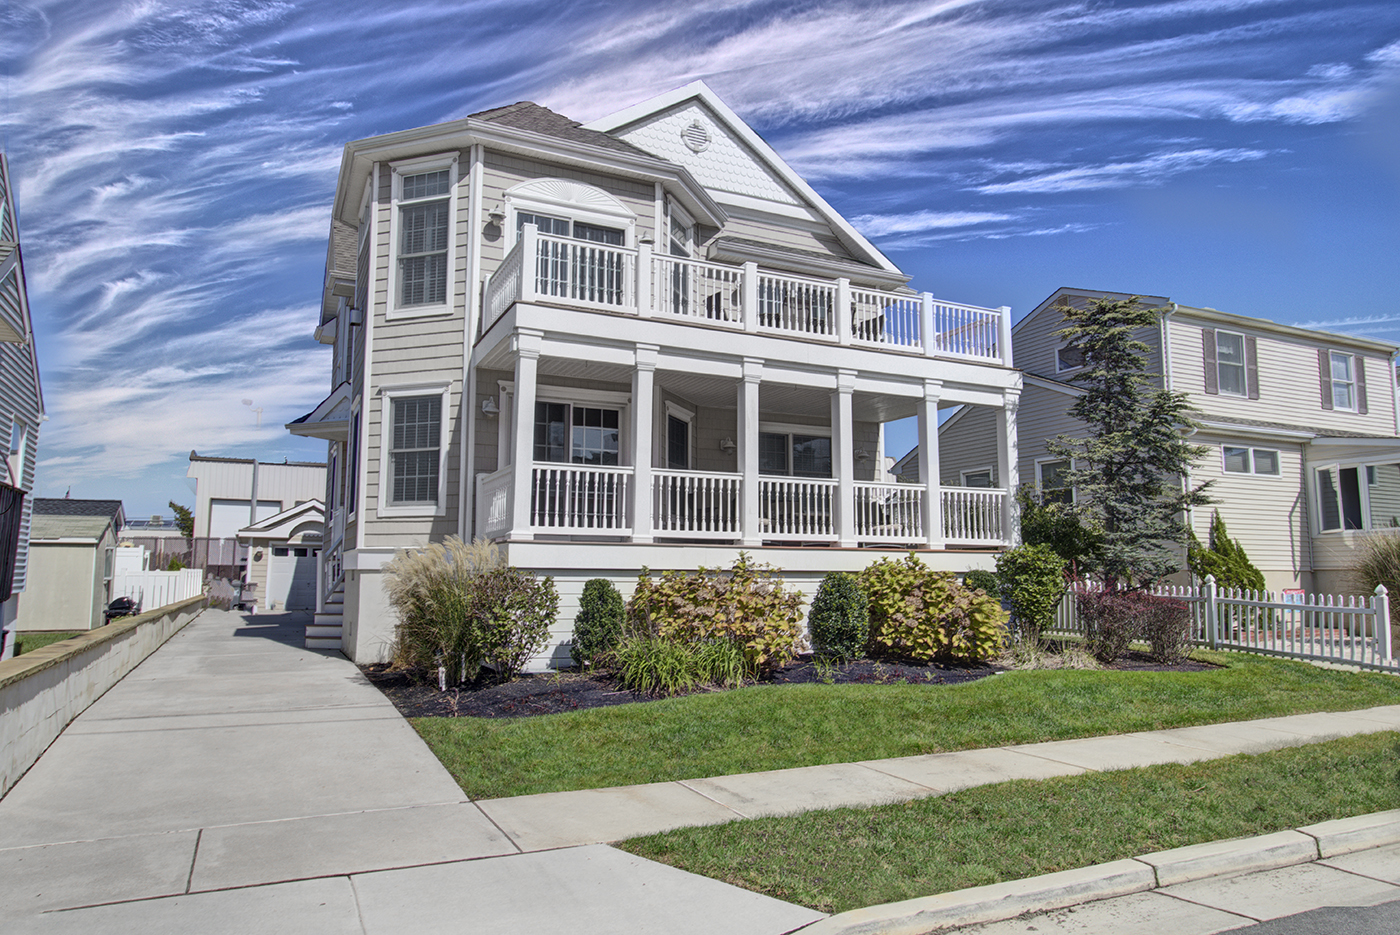 280 82nd Street - Stone Harbor, NJ